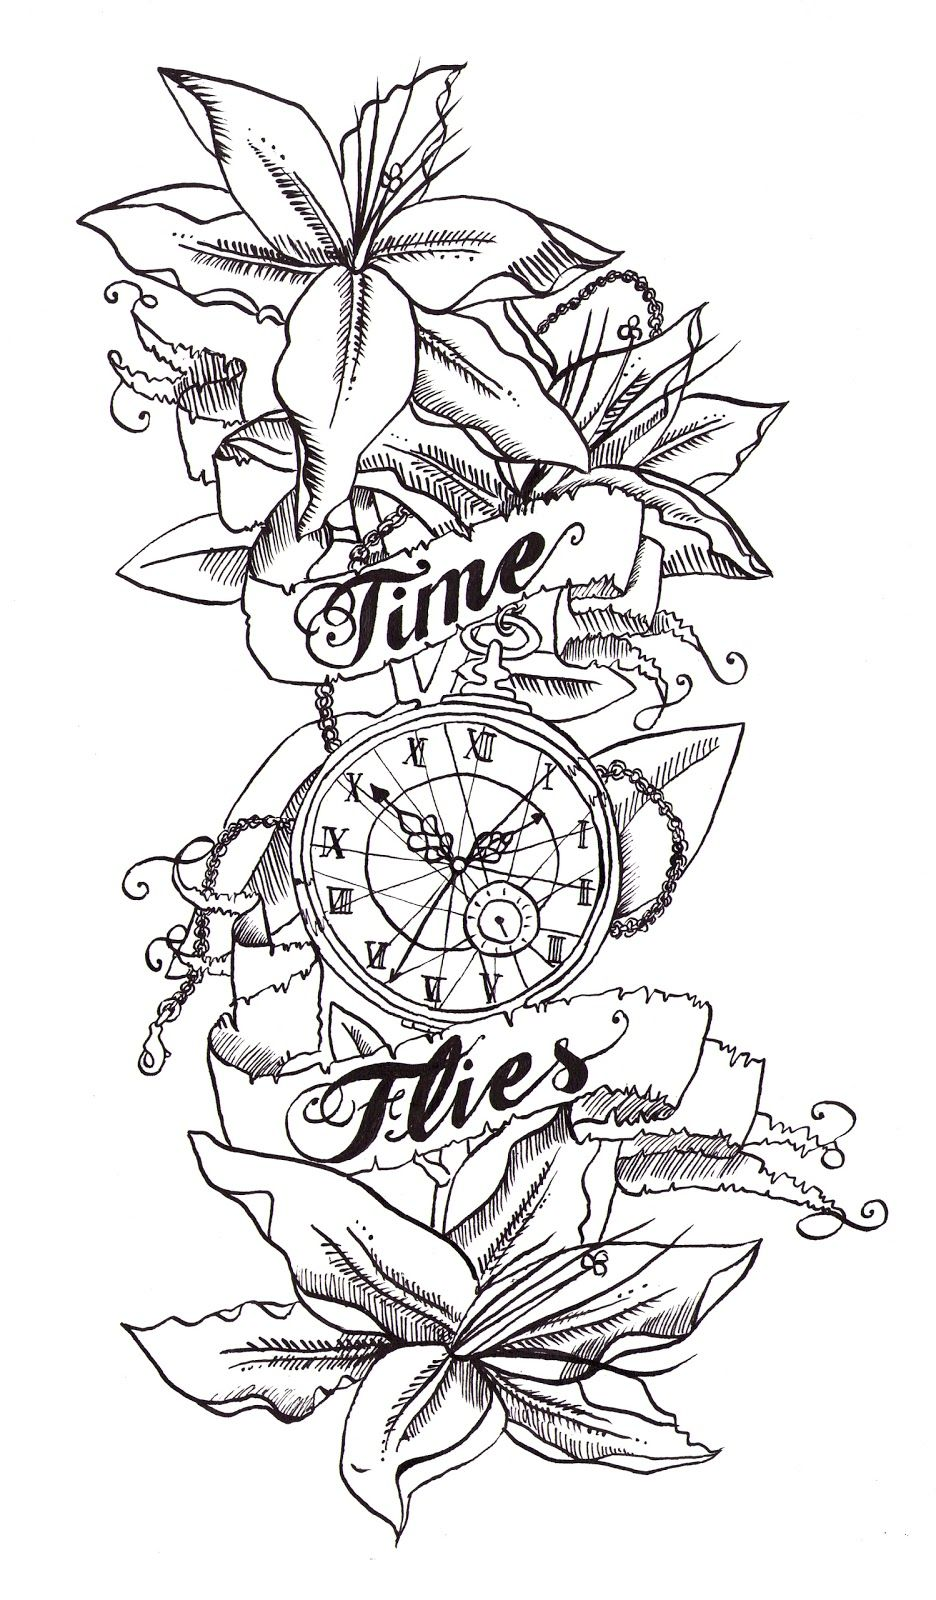 Tattoo designs coloring book - Time Related Tattoo Designs I Am By No Means A Tattoo